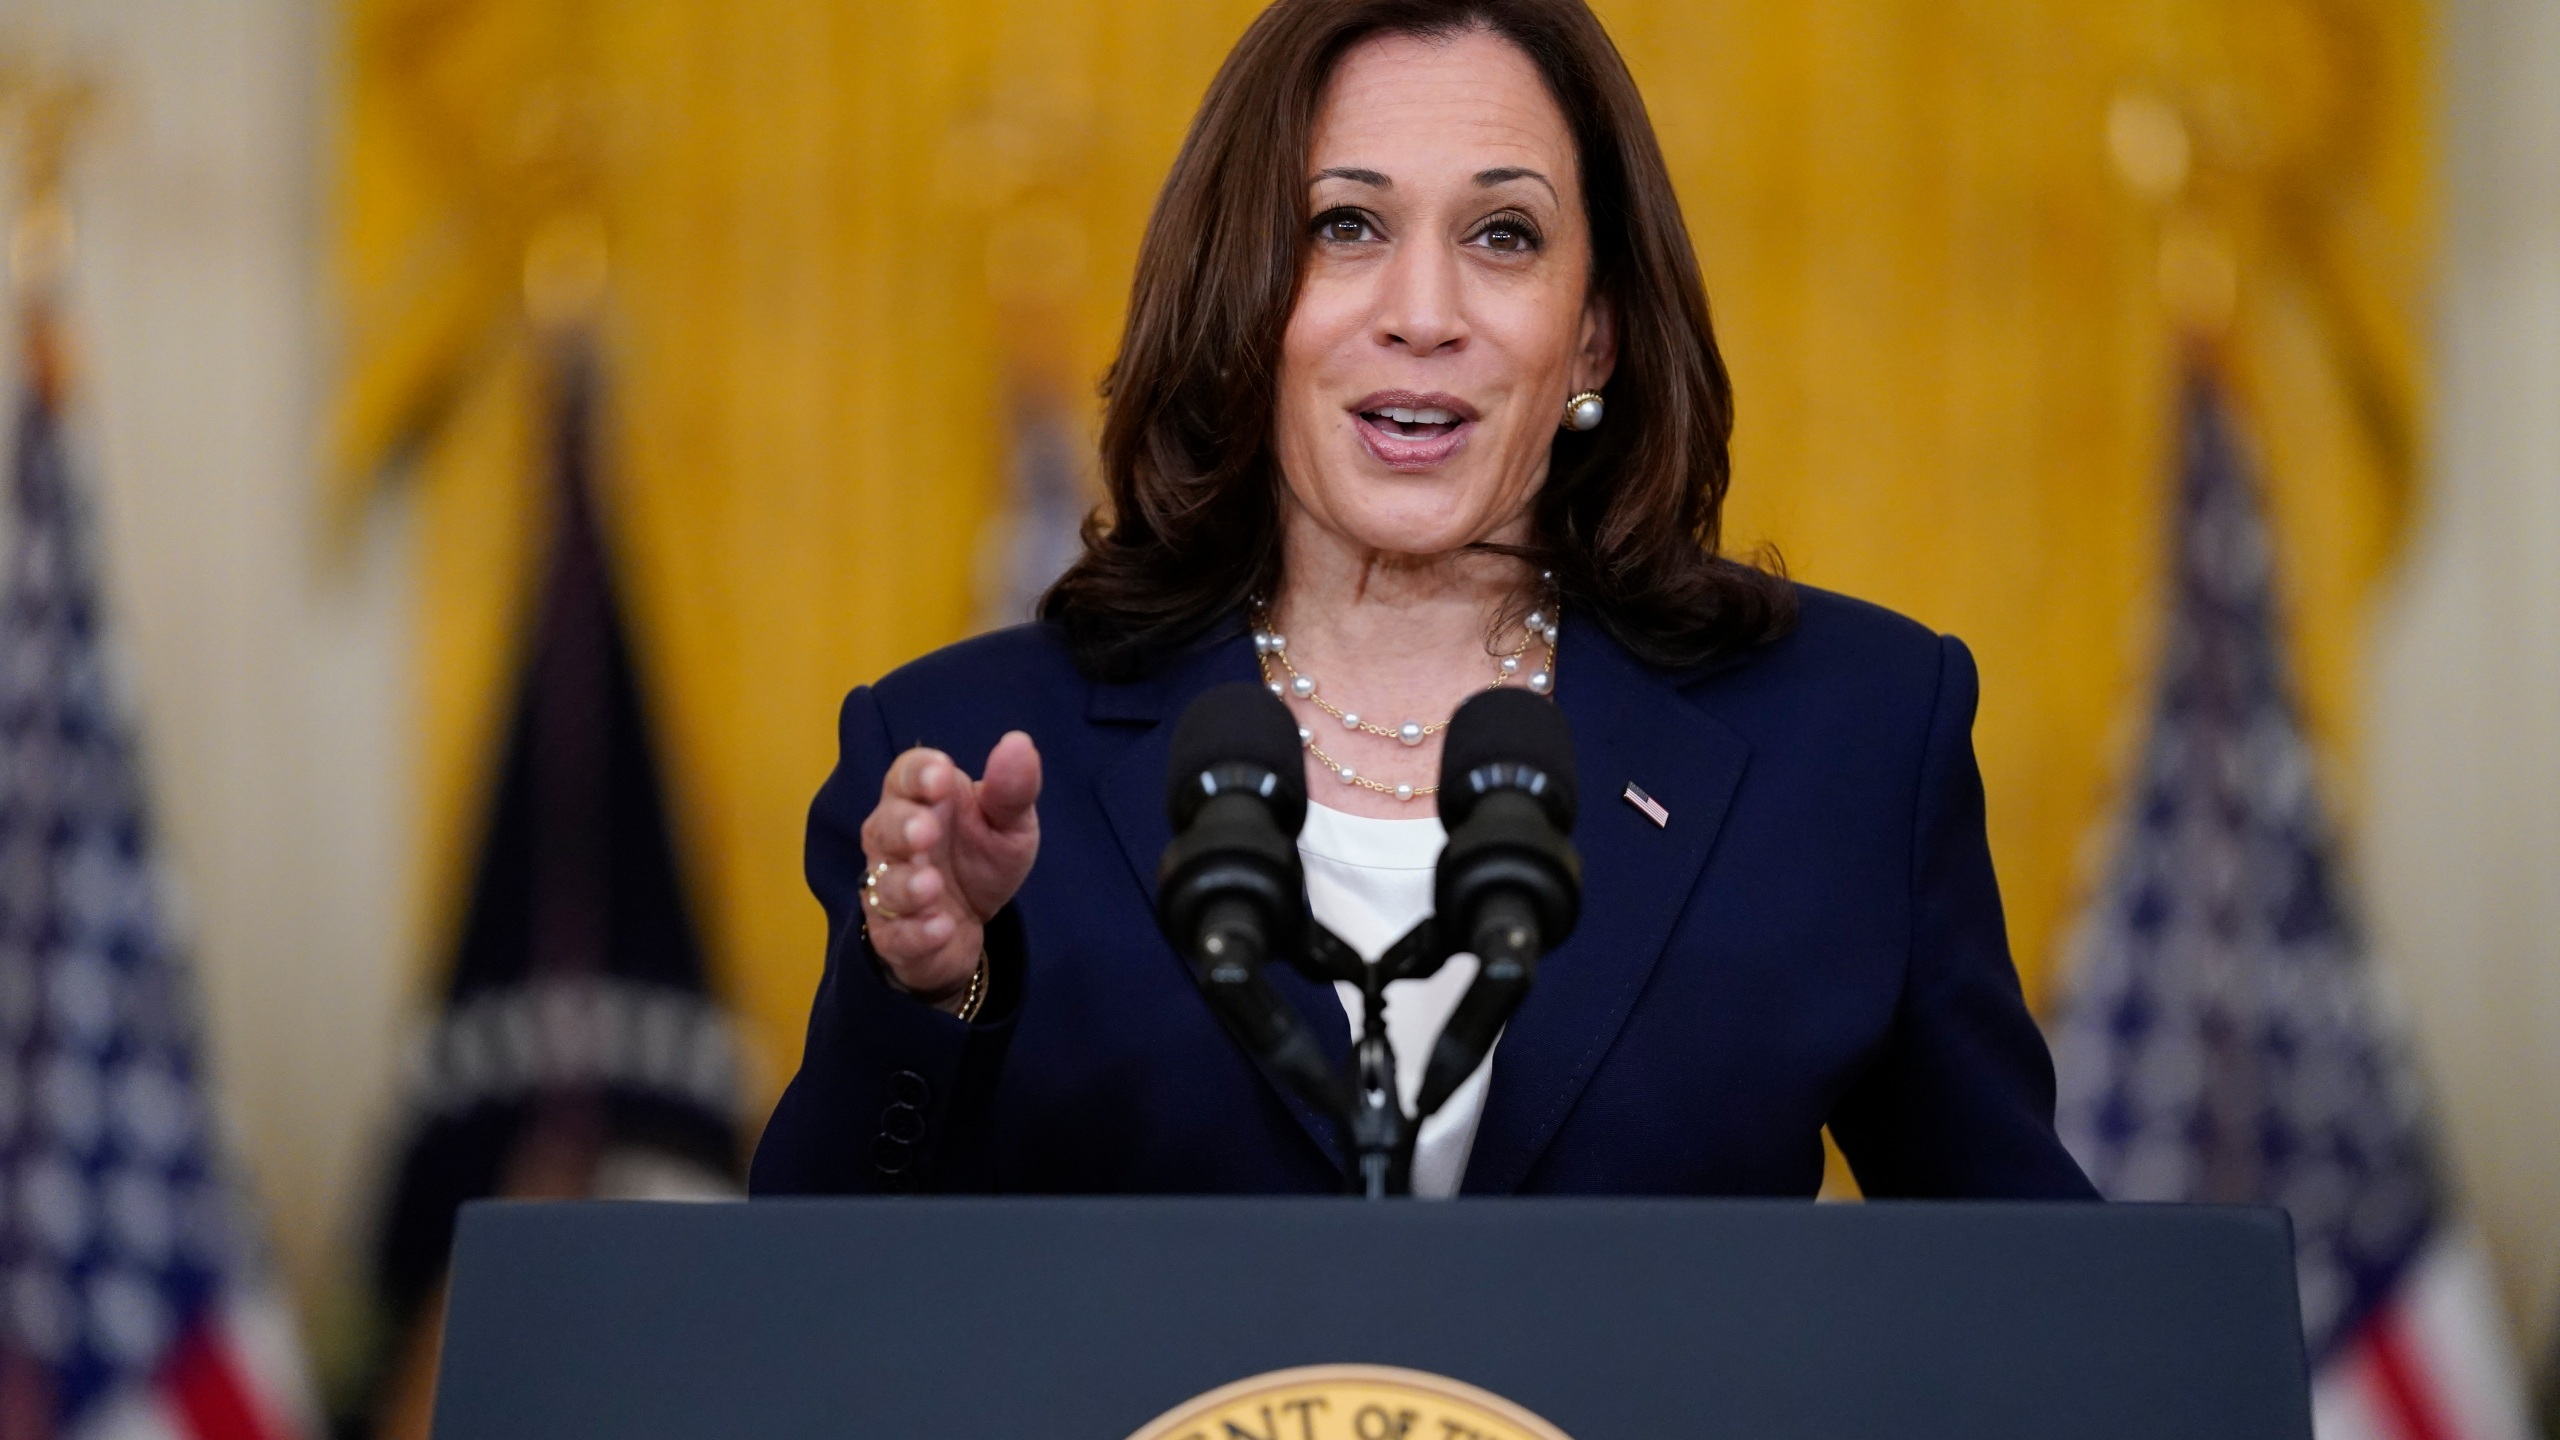 In this Aug. 10, 2021, file photo, Vice President Kamala Harris speaks from the East Room of the White House in Washington. (AP Photo/Evan Vucci, File)